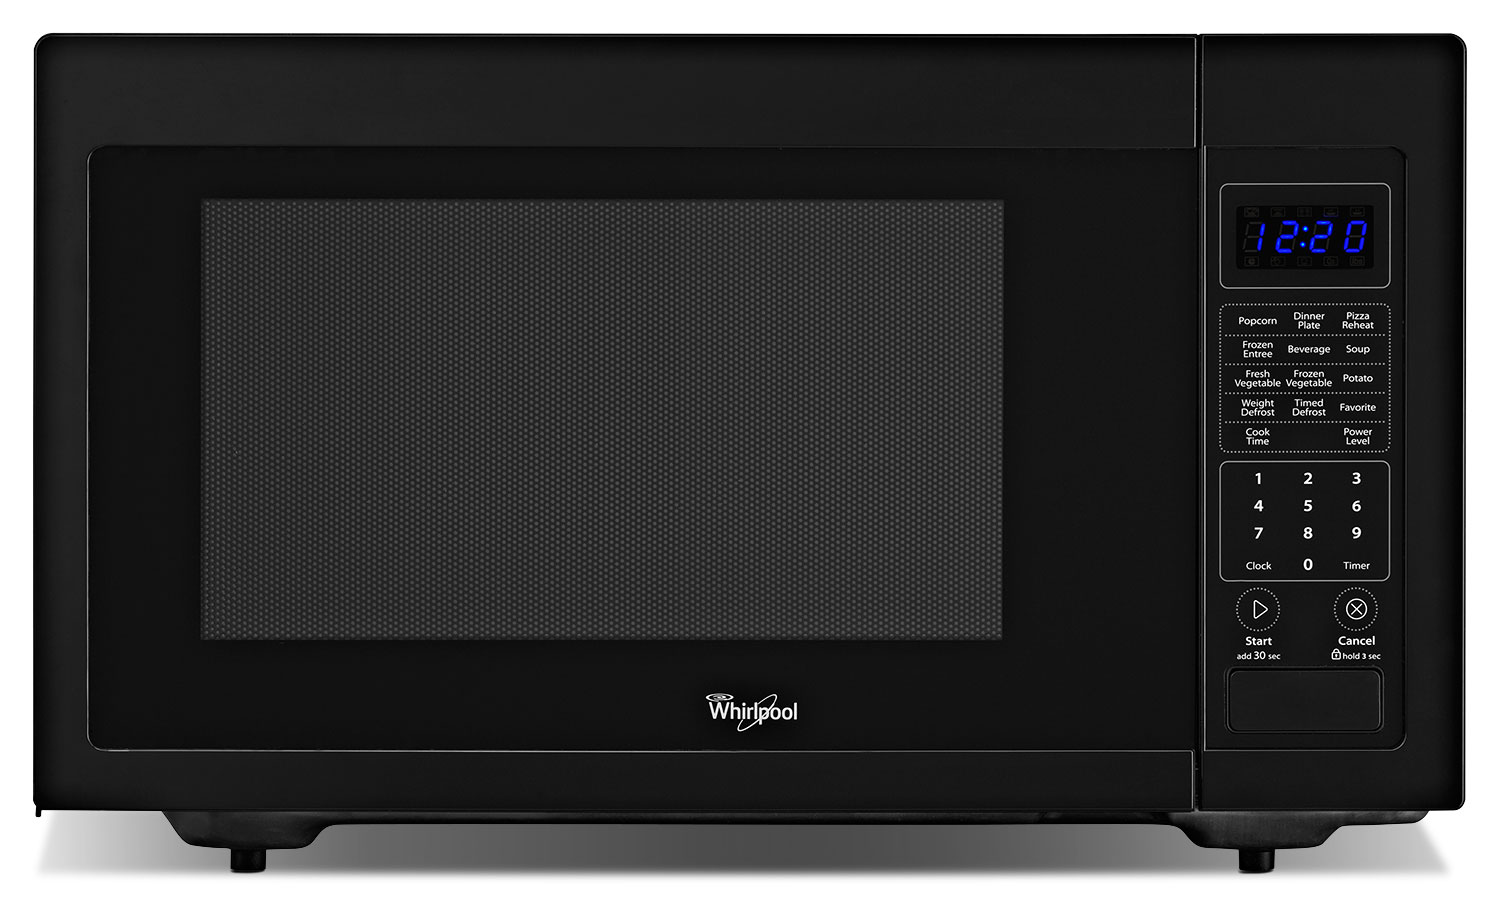 Cooking Products - Whirlpool Black Countertop Microwave (1.6 Cu. Ft.) - YWMC30516DB